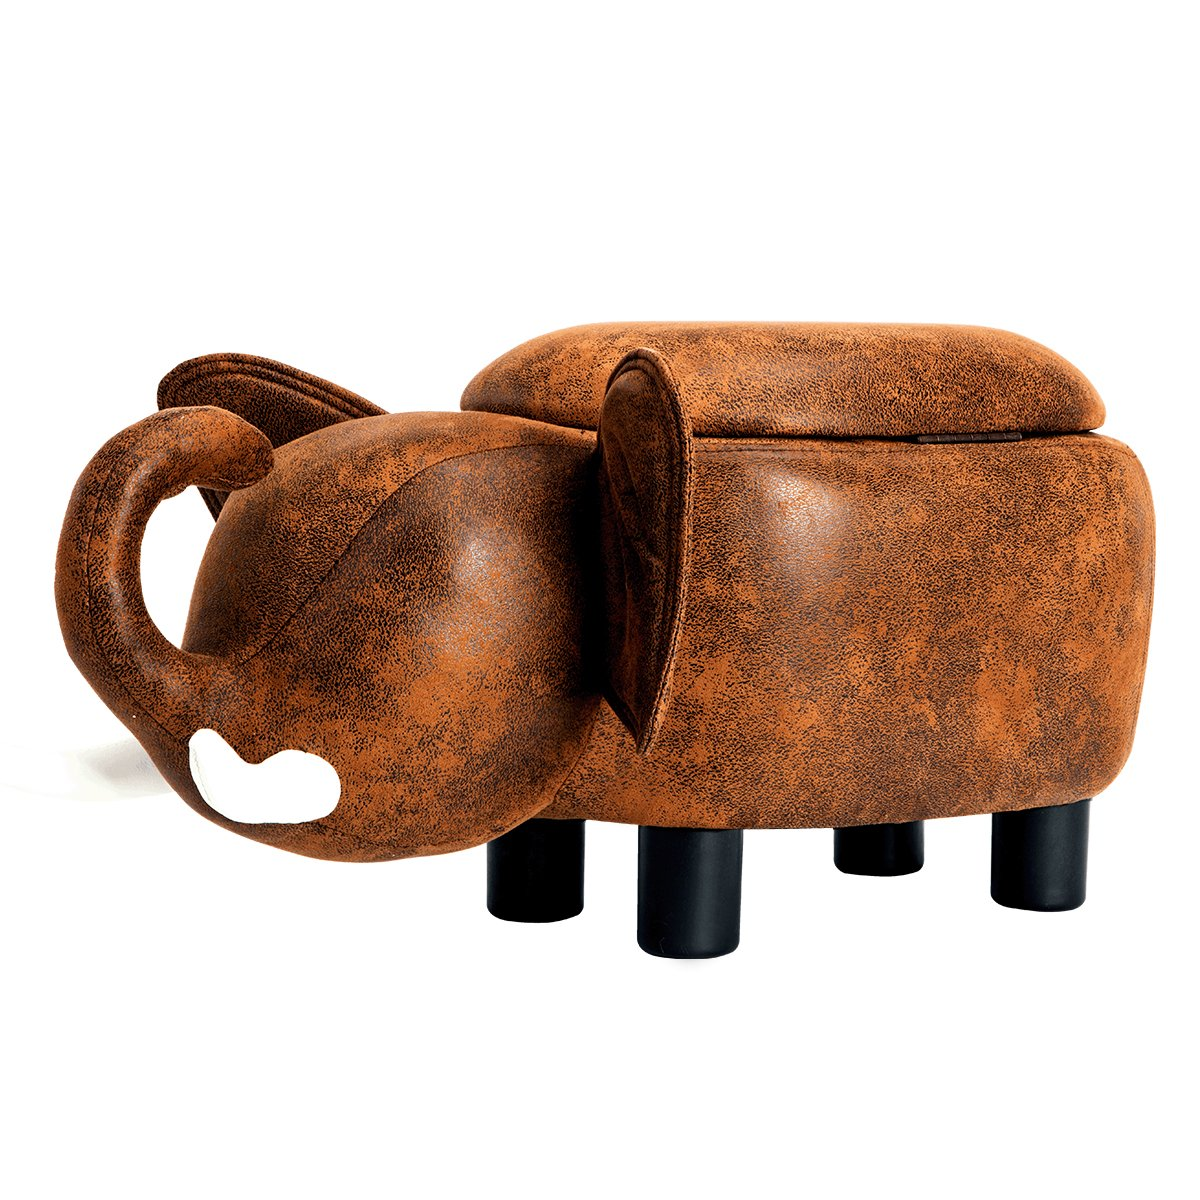 GUTEEN Upholstered Ride-on Toy Seat Storage Ottoman Footrest Stool with Vivid Adorable Animal-Like Features(Brown elephant)